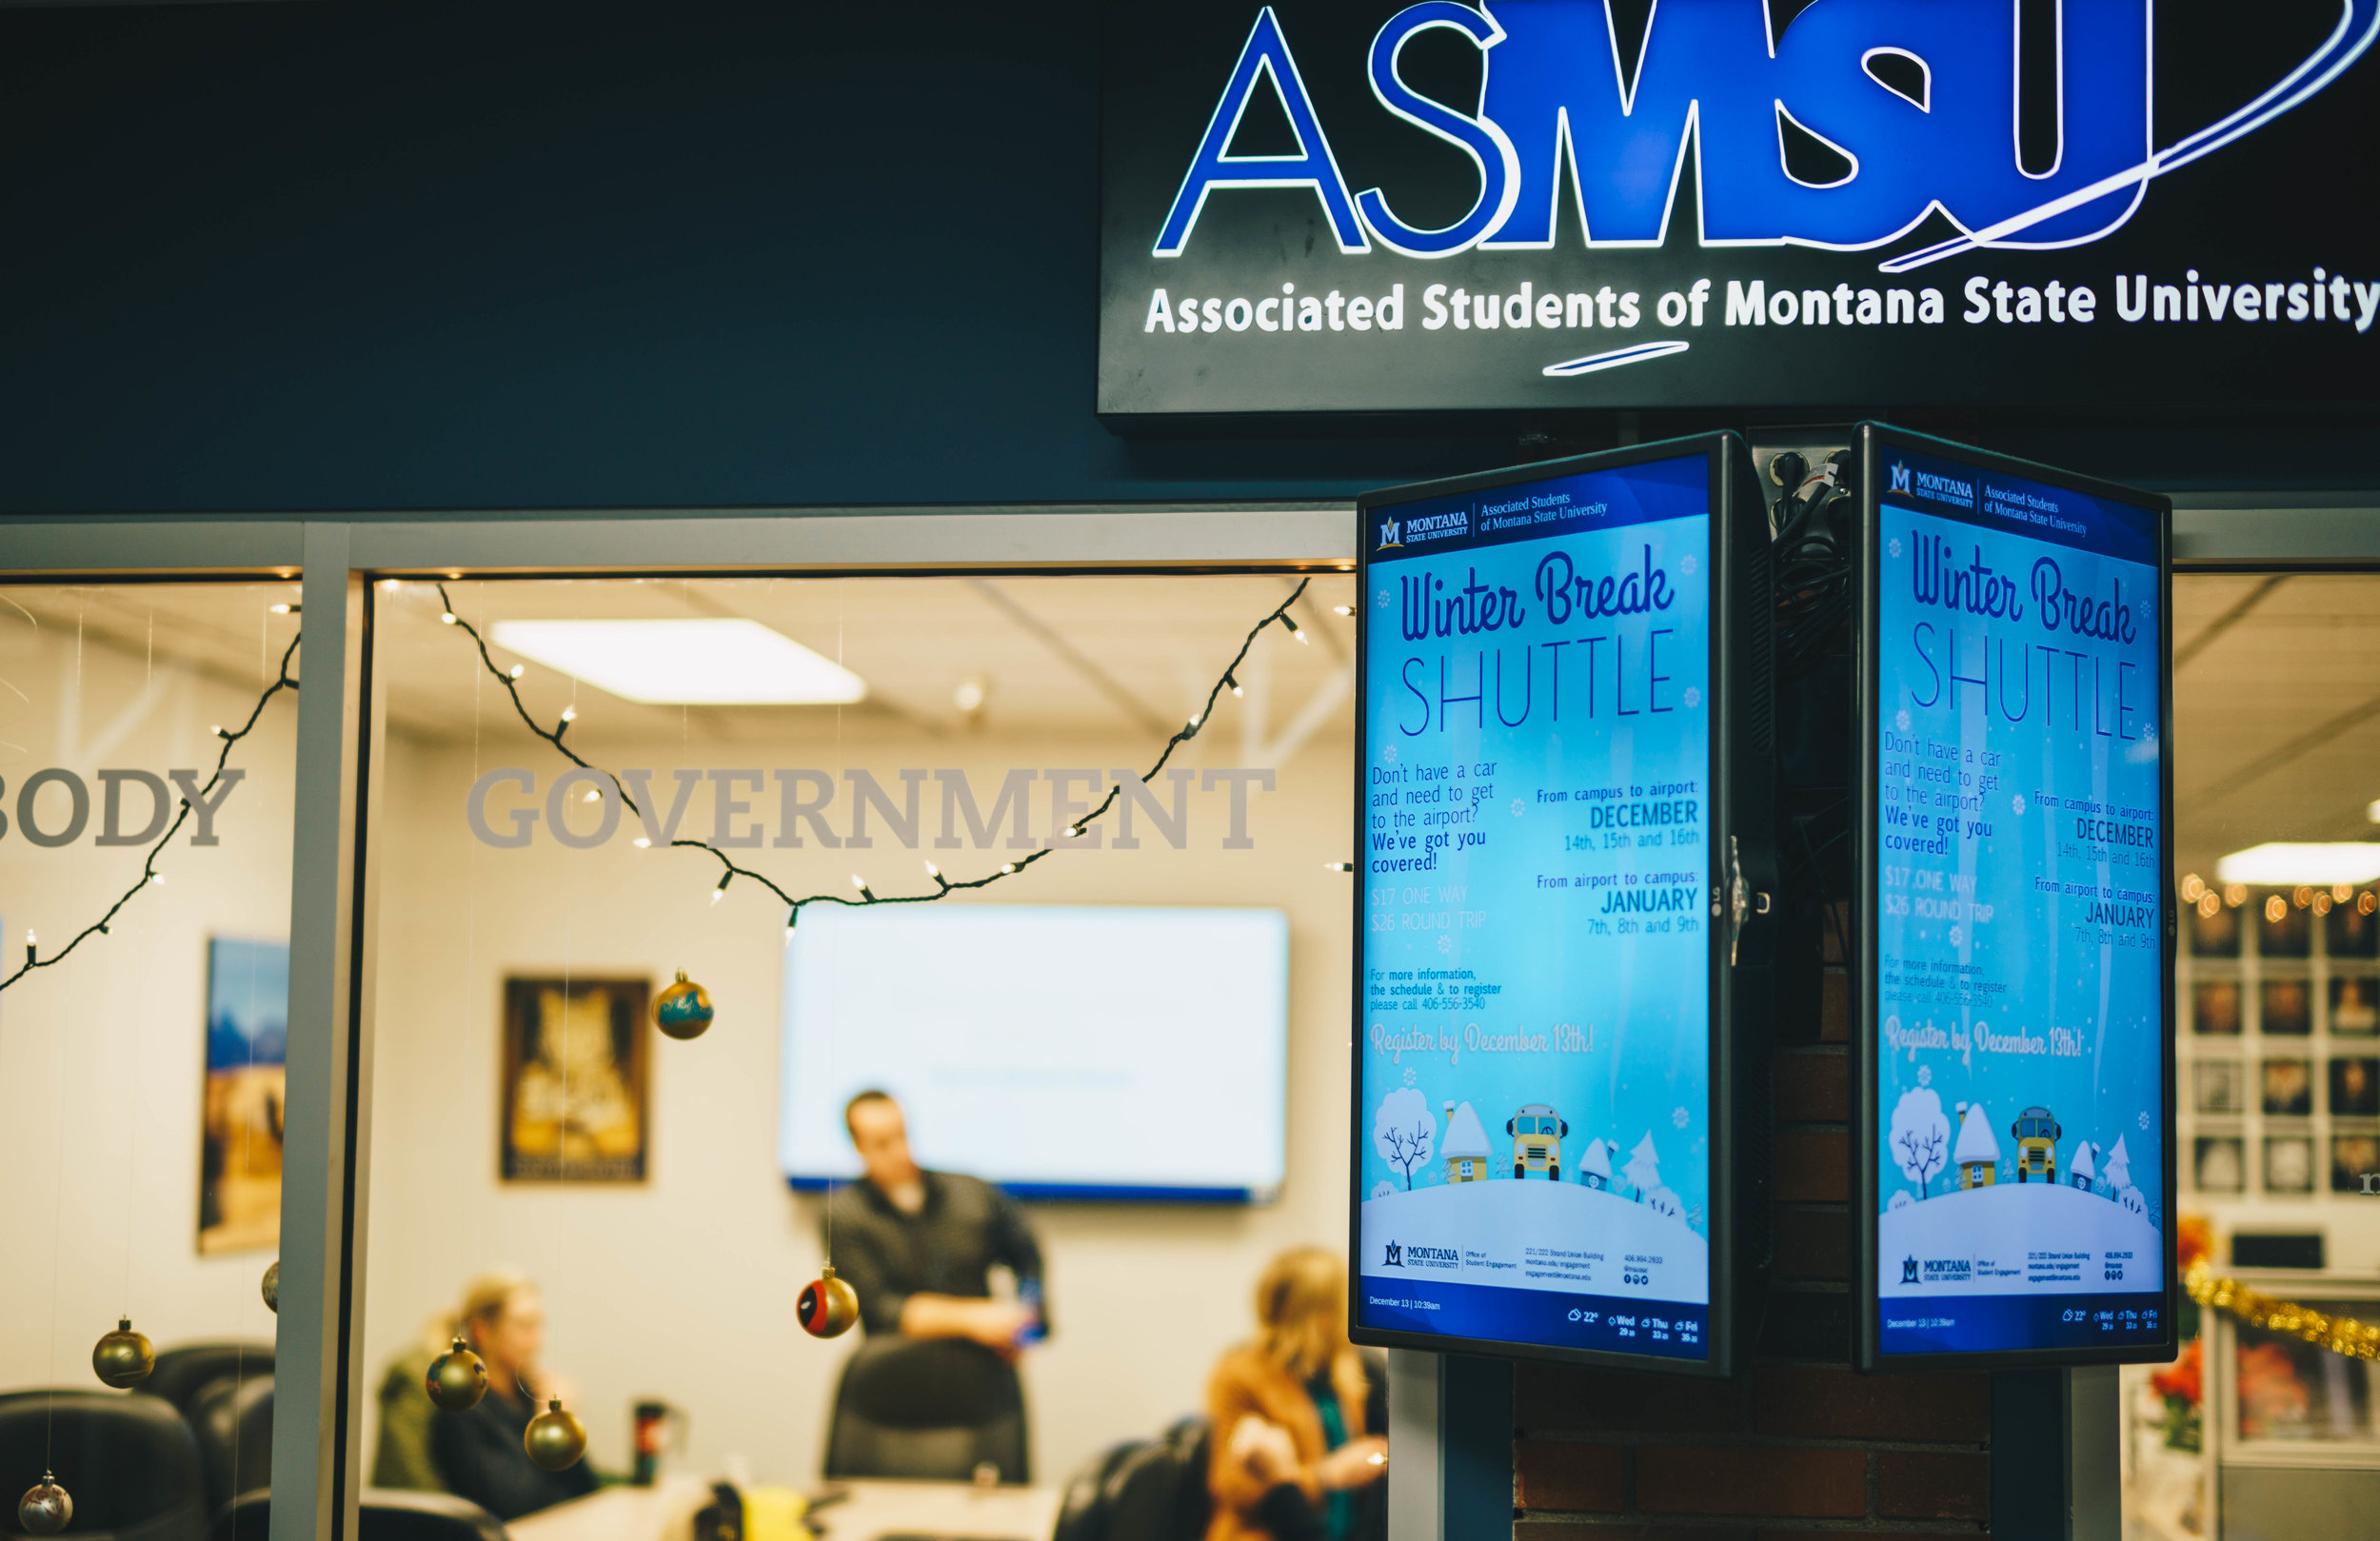 Our Team - ASMSU Student Legal Services, in partnership with Cromwell Law, PLLC, is dedicated to providing confidential and affordable legal counsel to Montana State University students.Stop by the ASMSU office, located in SUB 221, to make an appointment today!